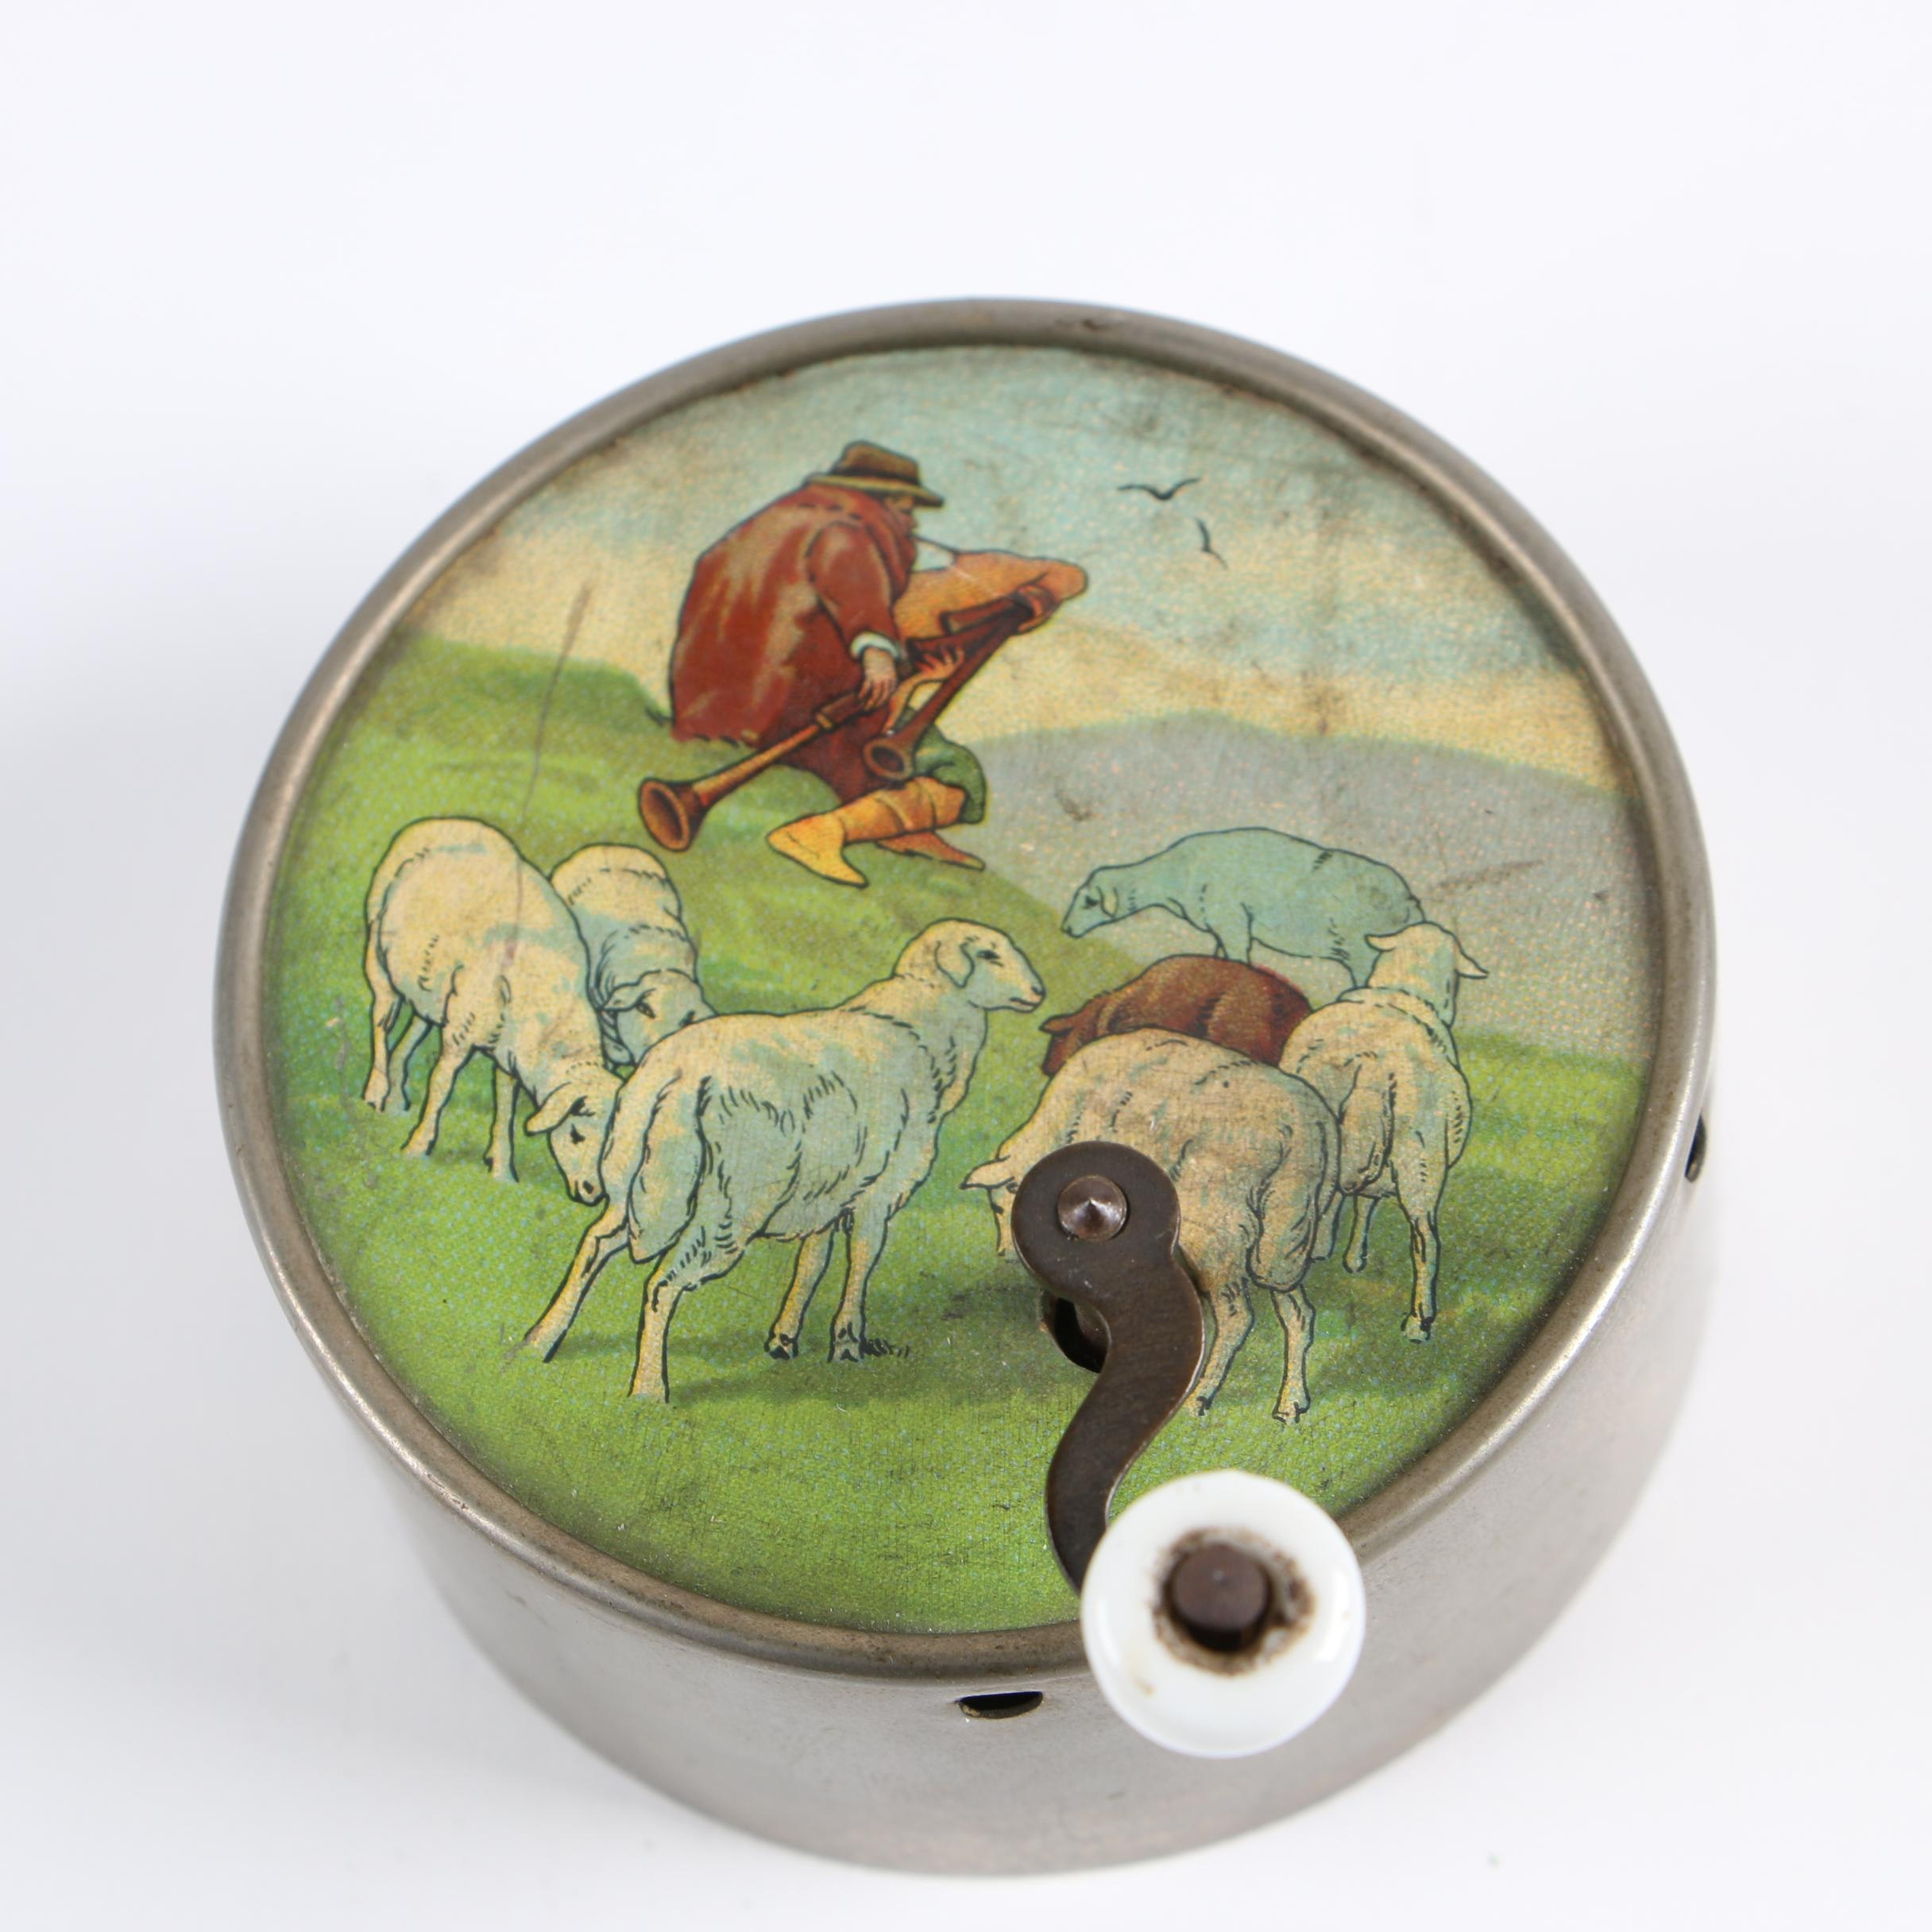 Manivelle (Hand Cranked) Music Box with Printed Lithographic Inserts